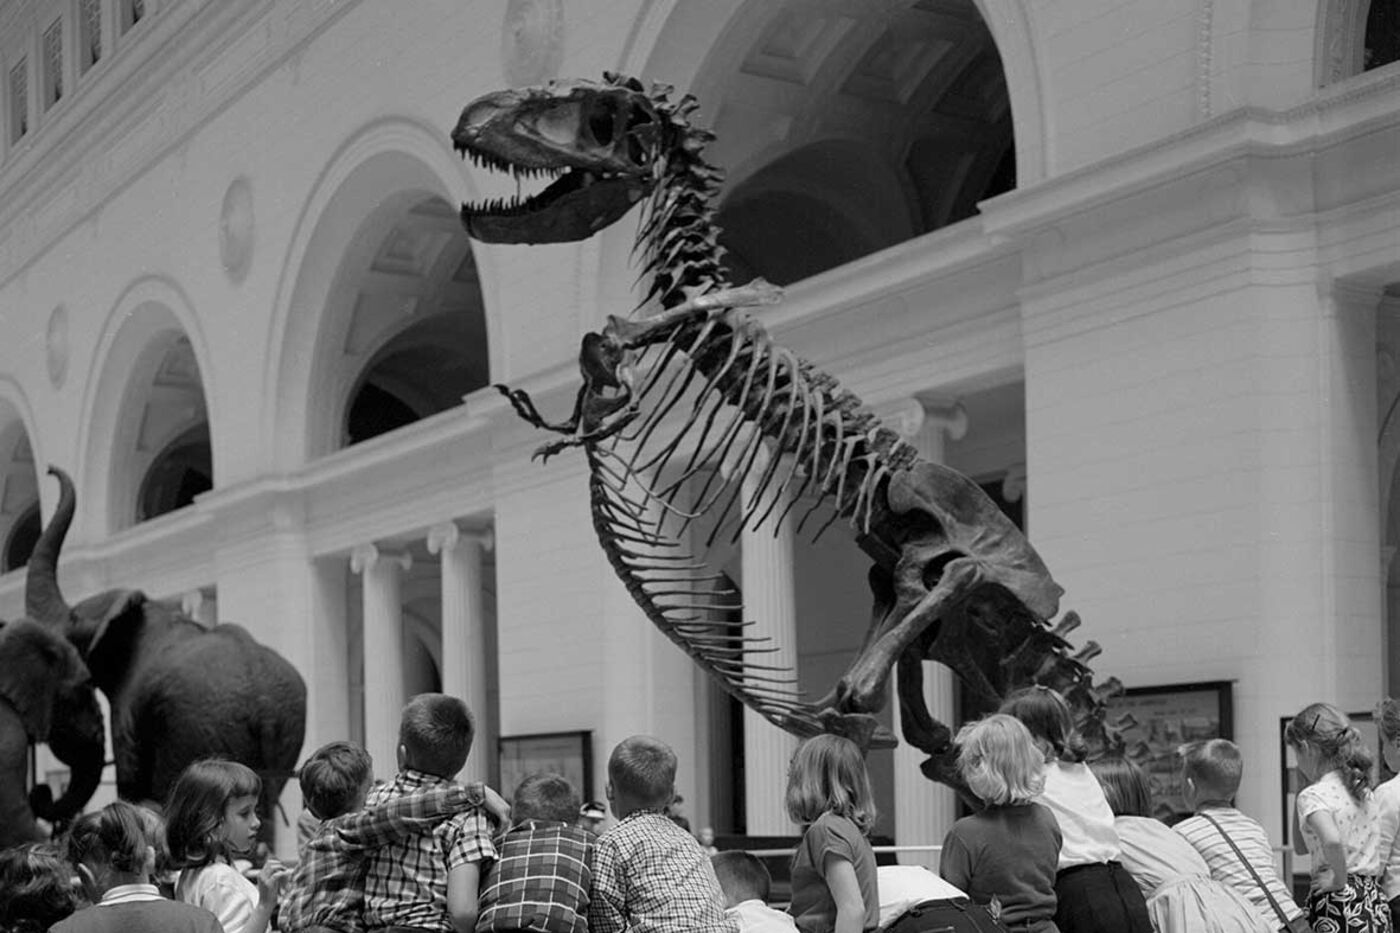 Children gather around the base of a Daspletosaurus dinosaur skeleton. Taxidermied elephants and Stanley Field Hall's classical architecture are in the background.